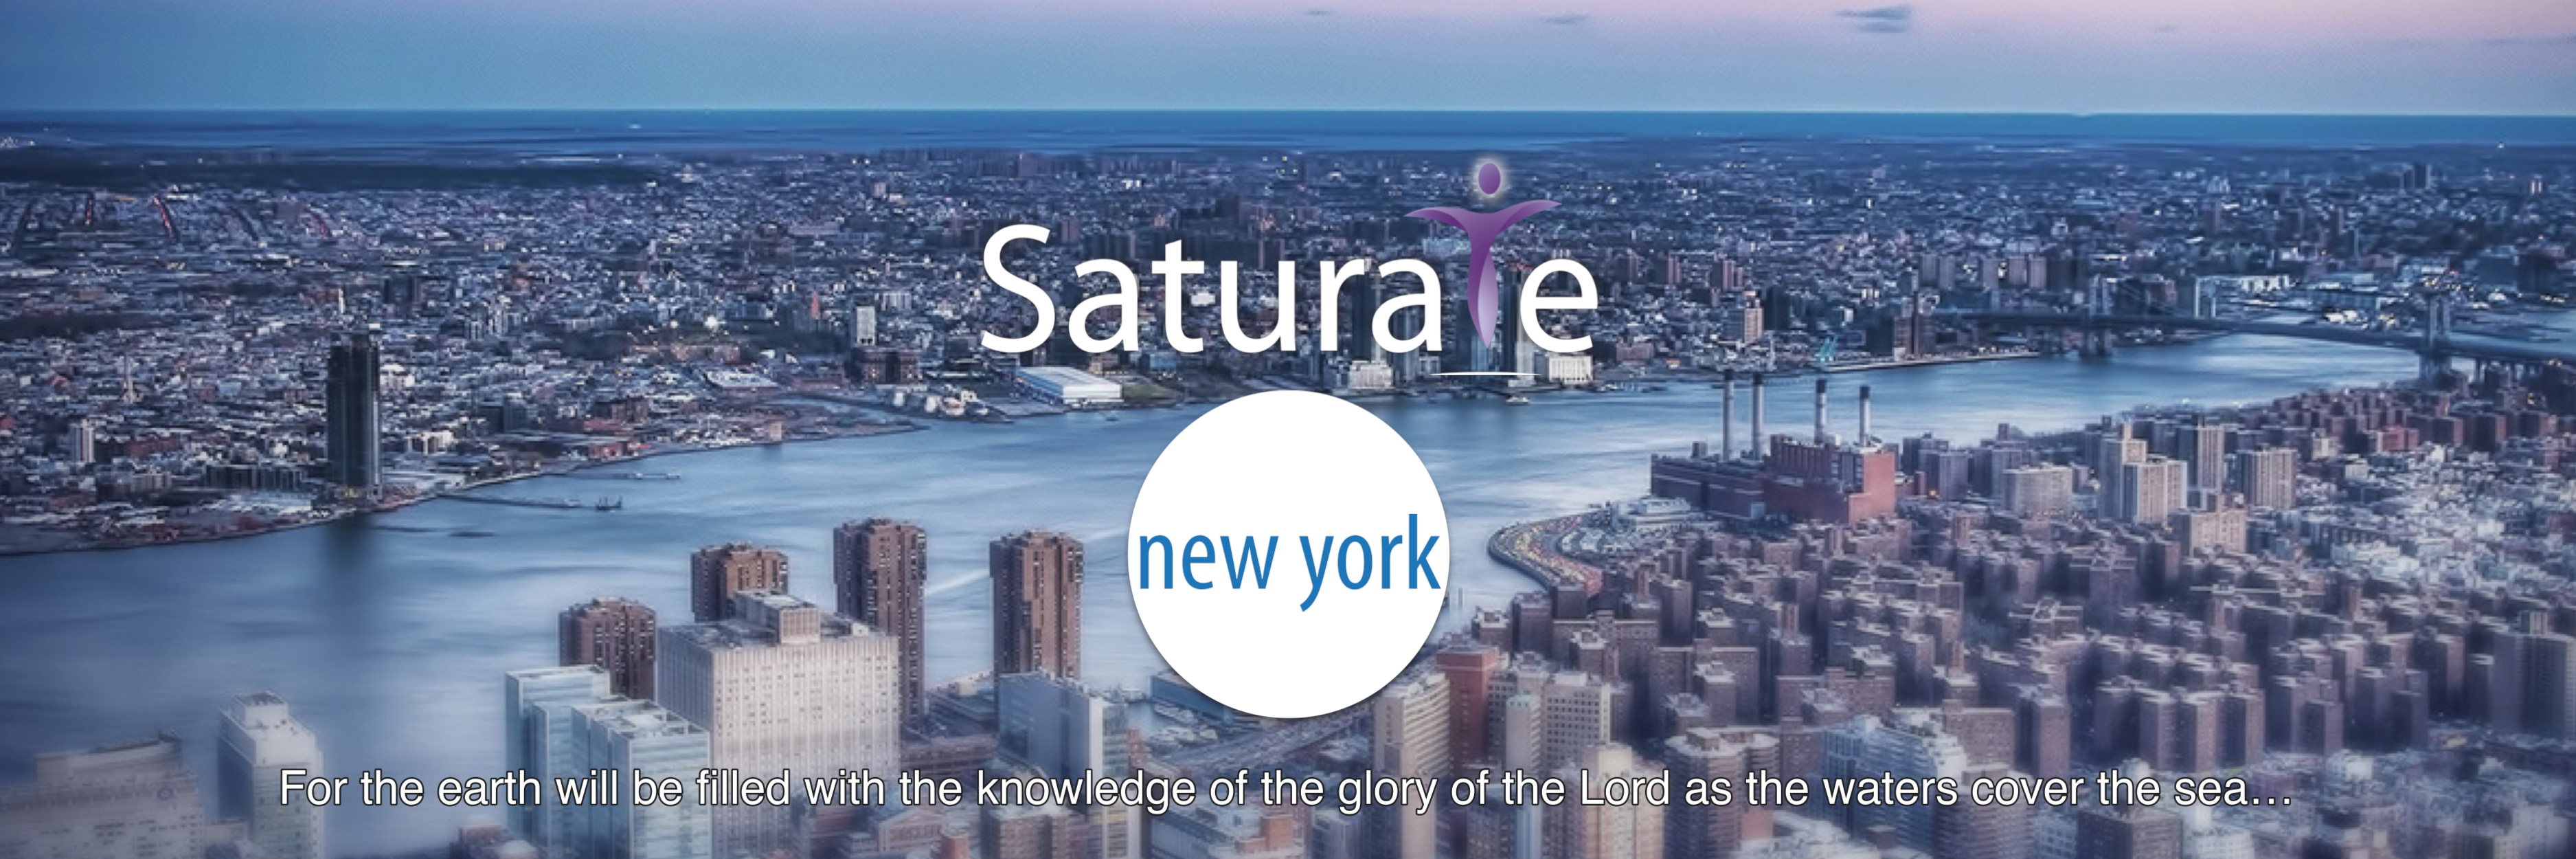 QUEENS CD 12 | SATURATE NYC